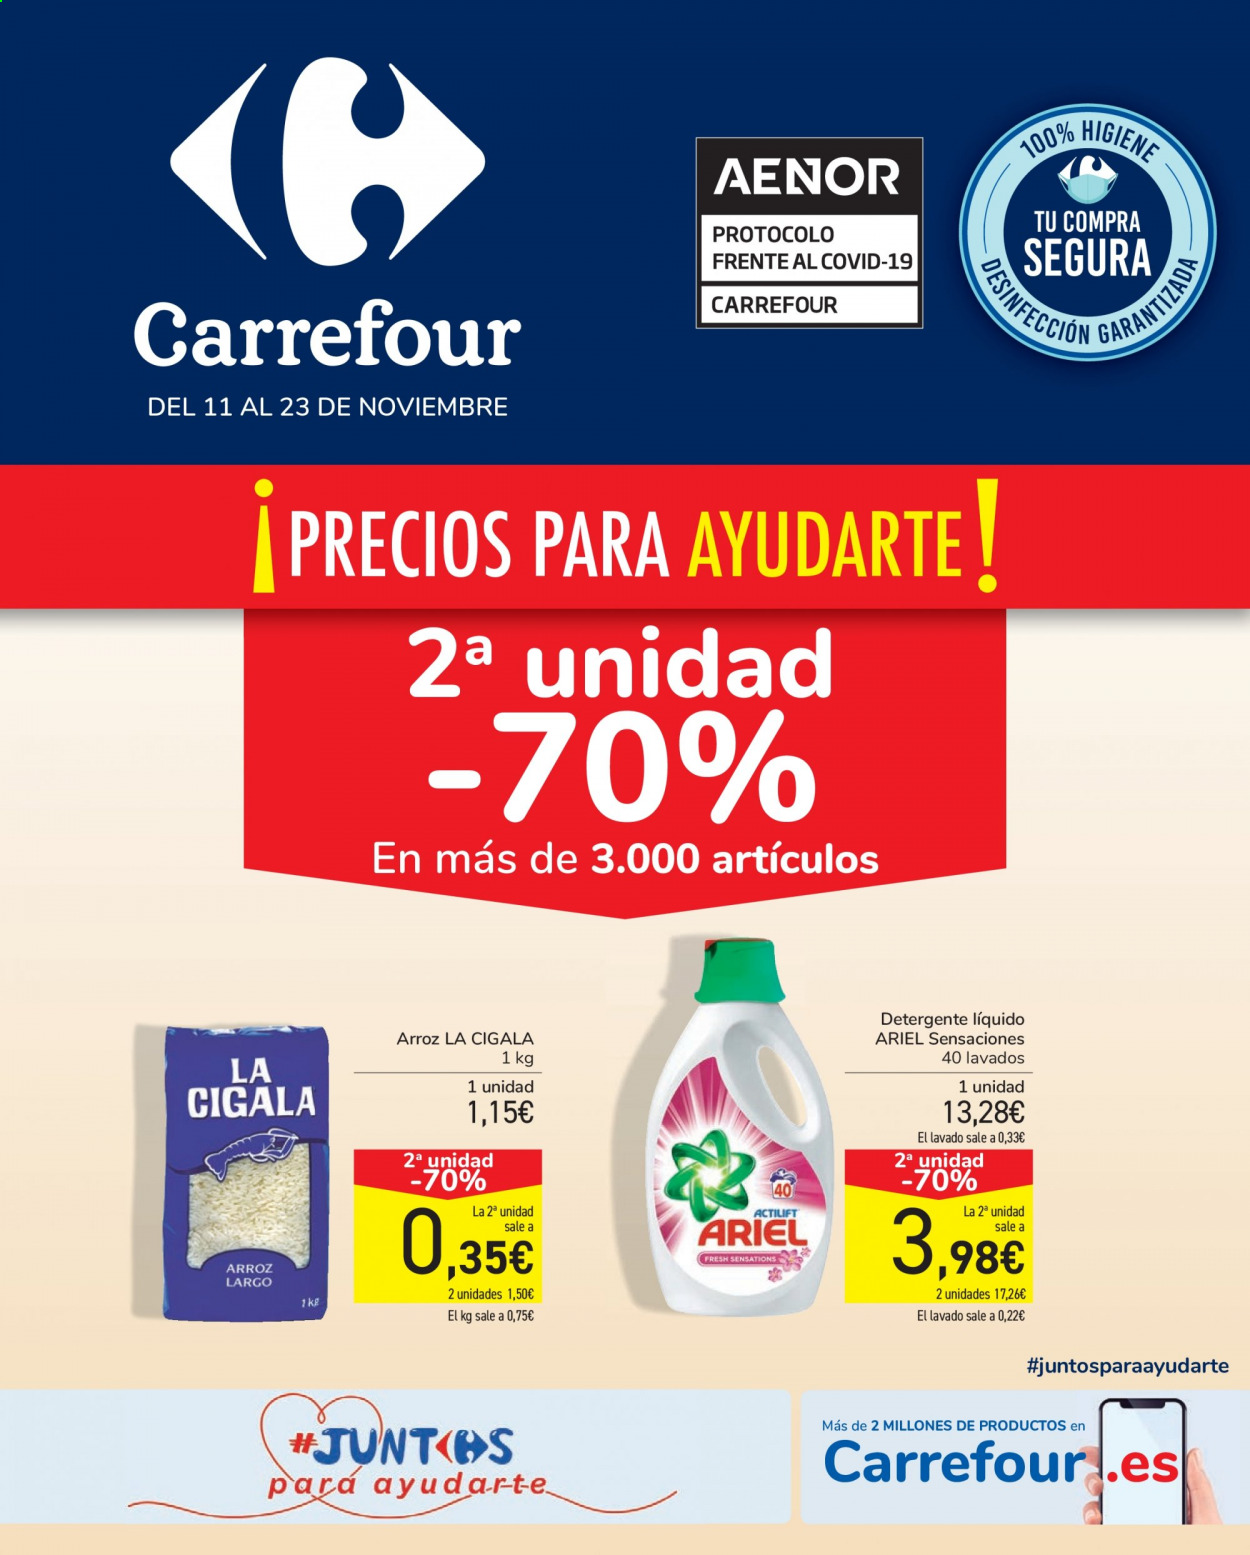 Folleto actual Carrefour - 11.11.2020 - 23.11.2020 - Ventas - detergente, arroz, ariel. Página 1.